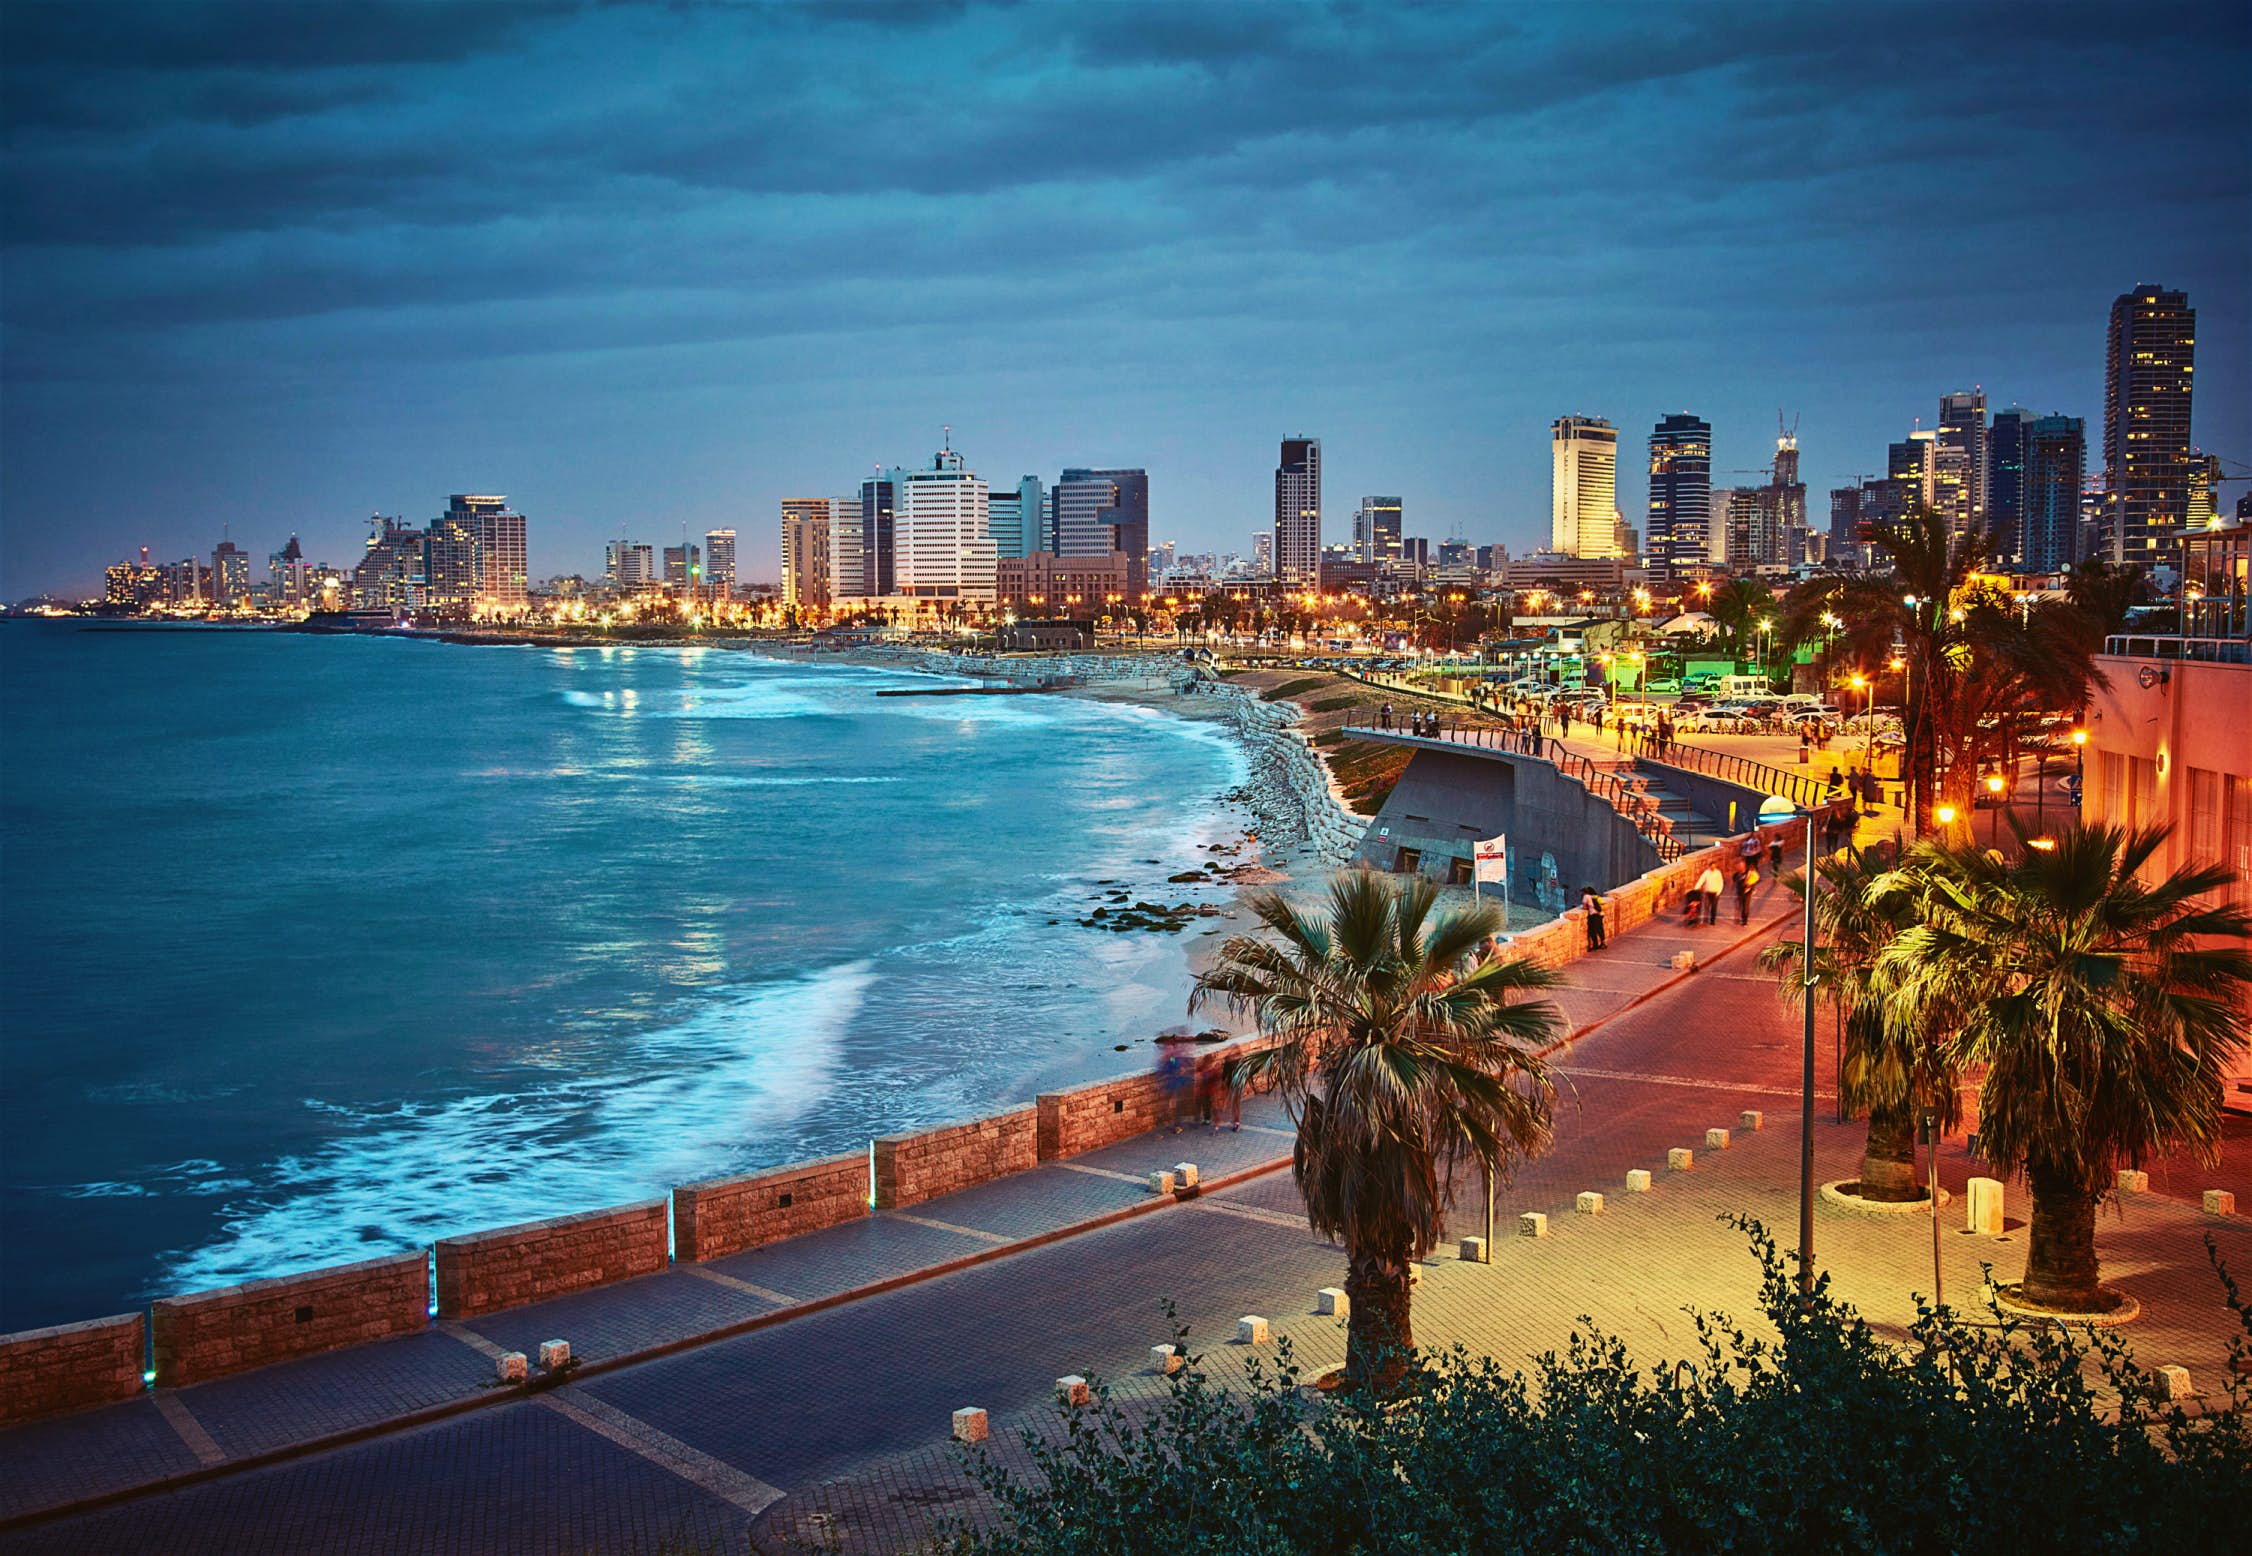 Tel Aviv Poised to be Top Global Destination?